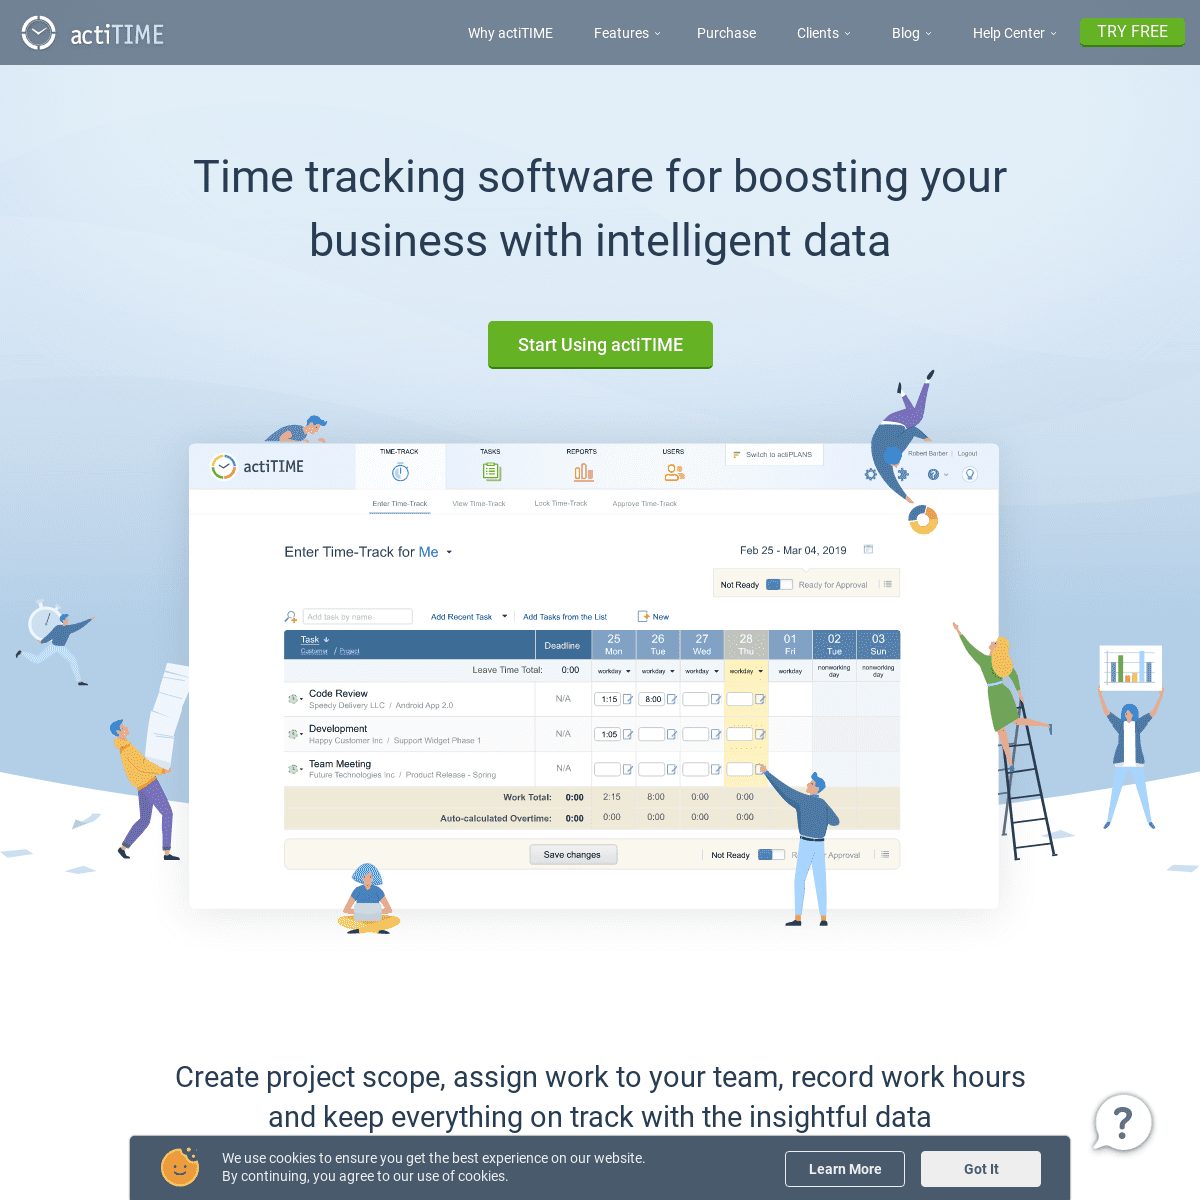 actiTIME - Time Tracking Software for Boosting Your Business